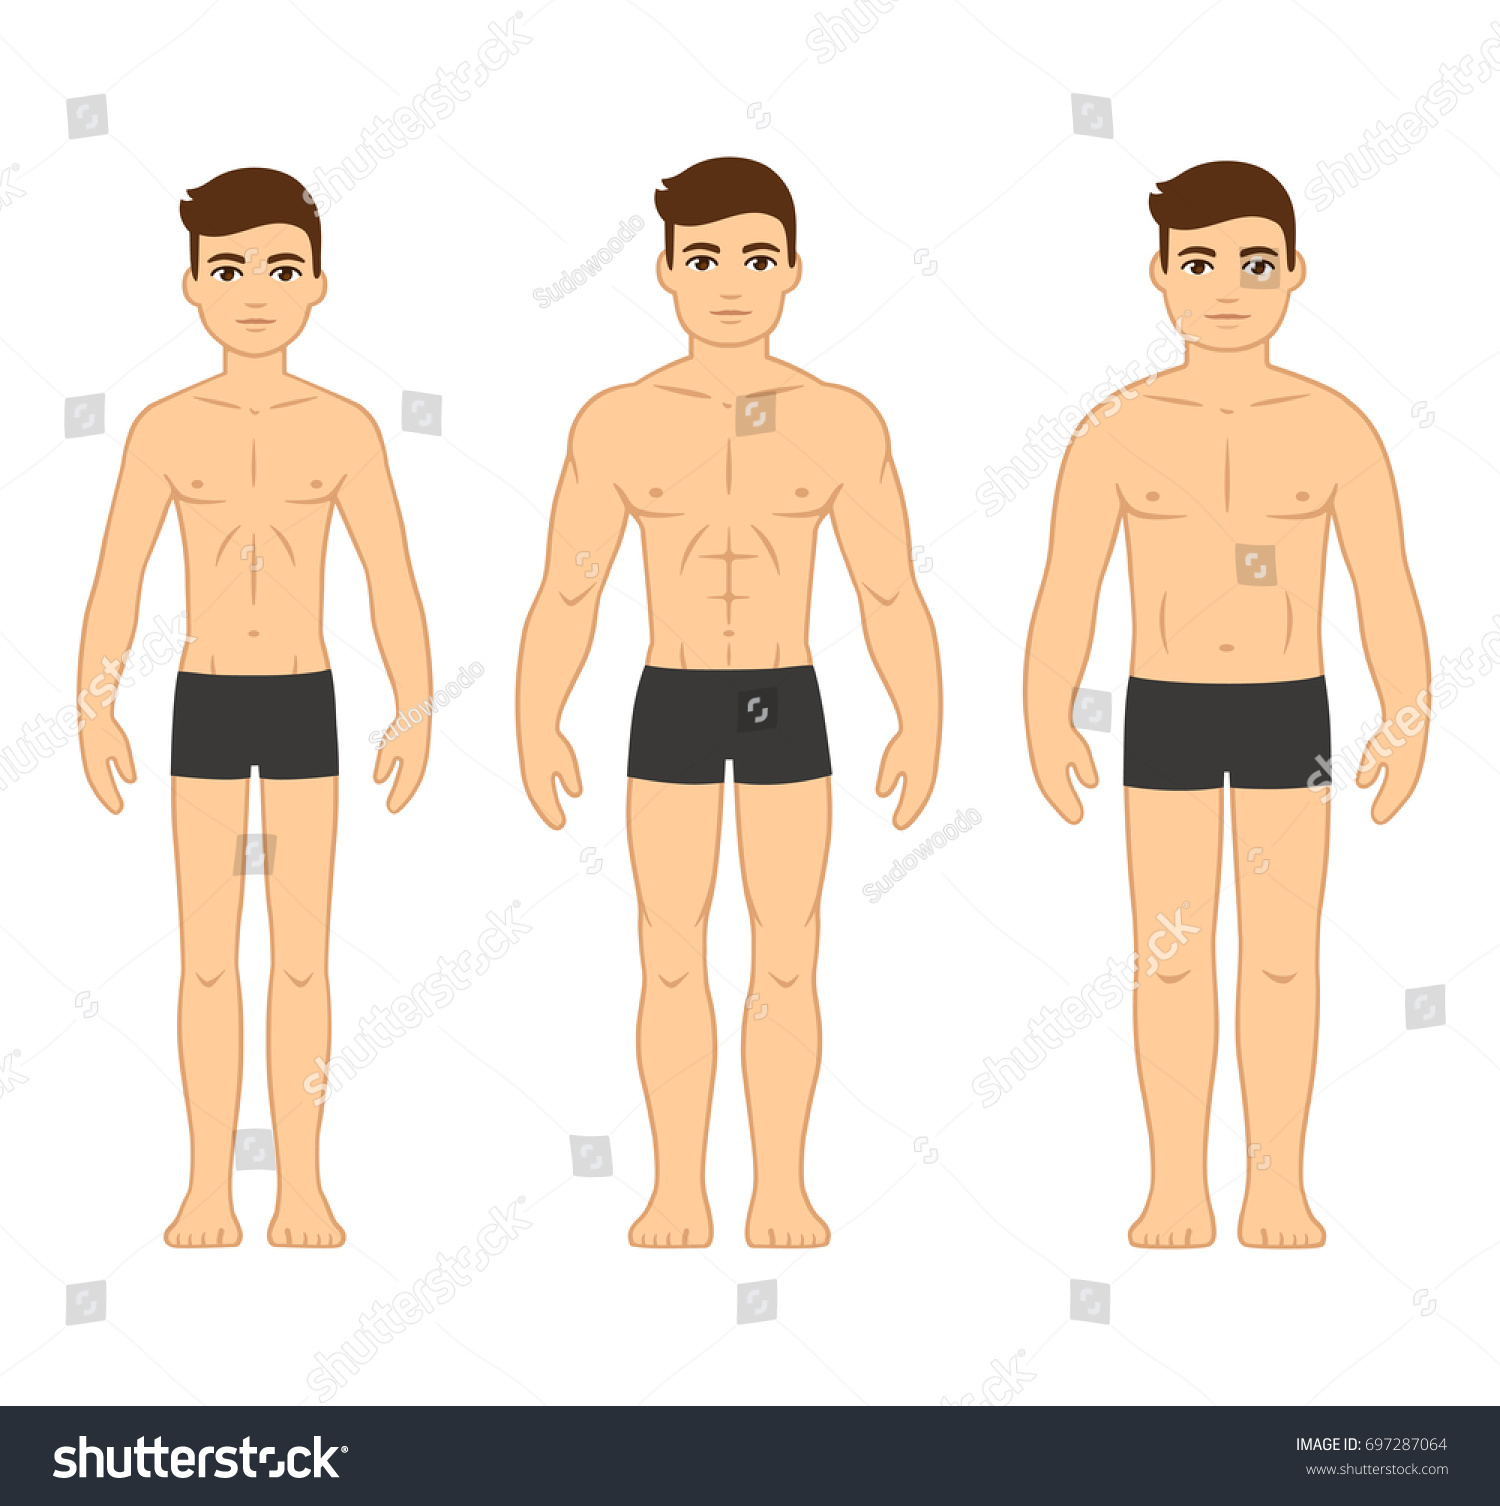 Male body types diagram ectomorph skinny stock vector 697287064 male body types diagram ectomorph skinny mesomorph muscular and endomorph pooptronica